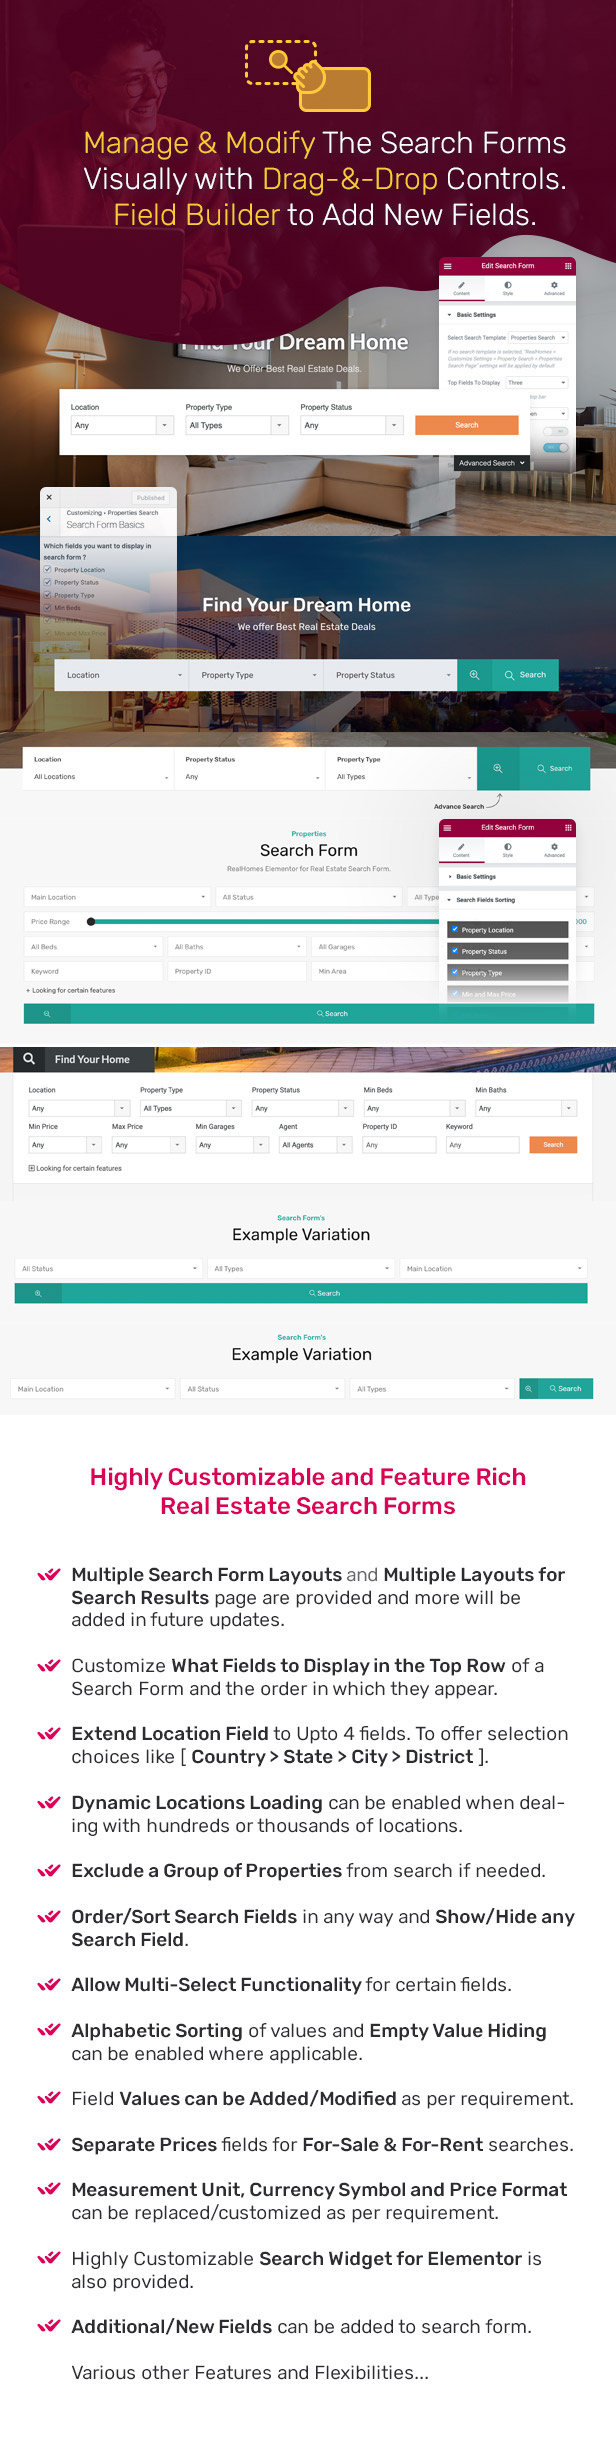 Highly customizable real estate search.